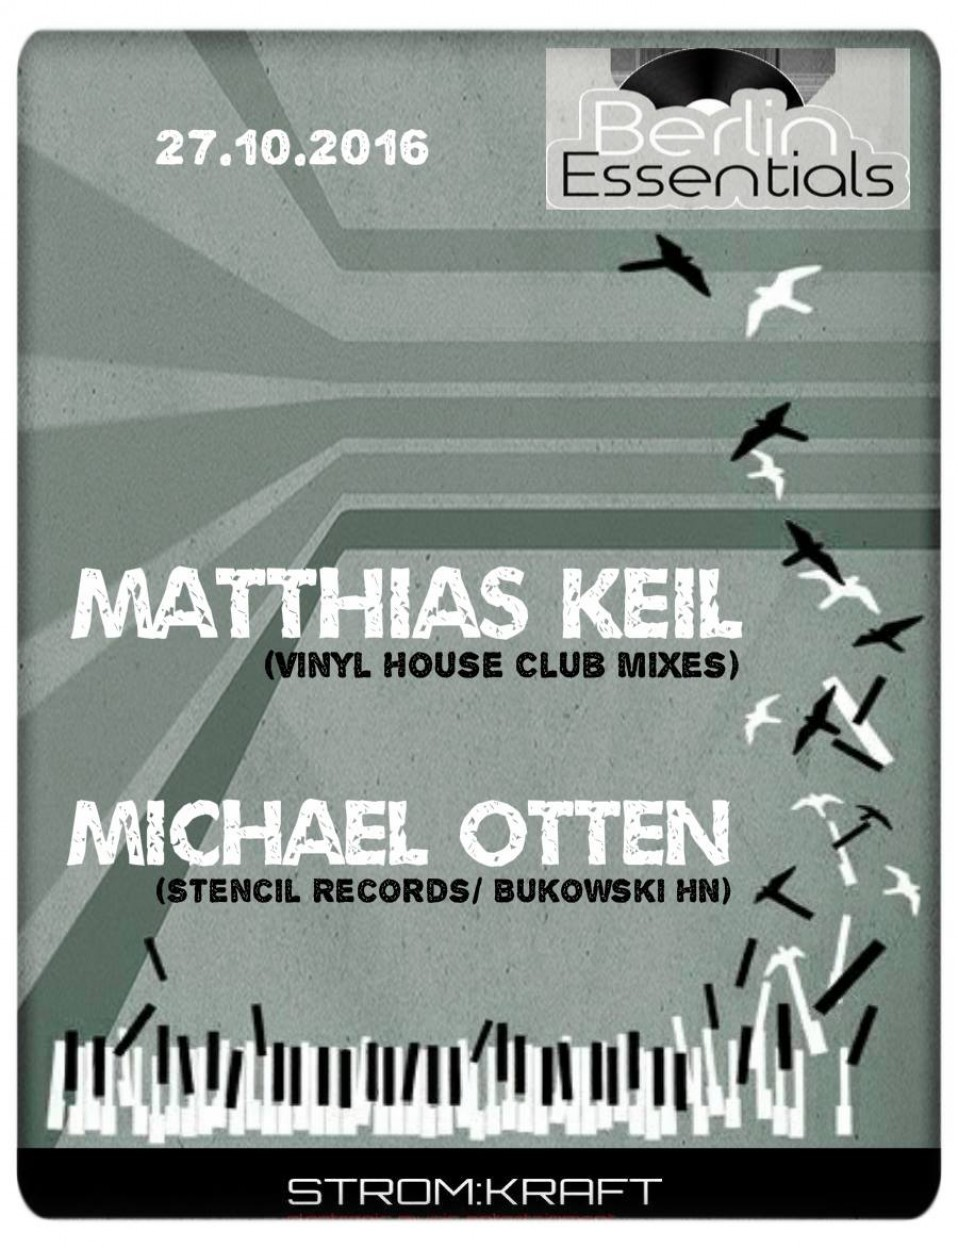 Thursday October 27th 08.00pm CET- Berlin Essentials Radio by Michael Otten ( Stencil Rec.)